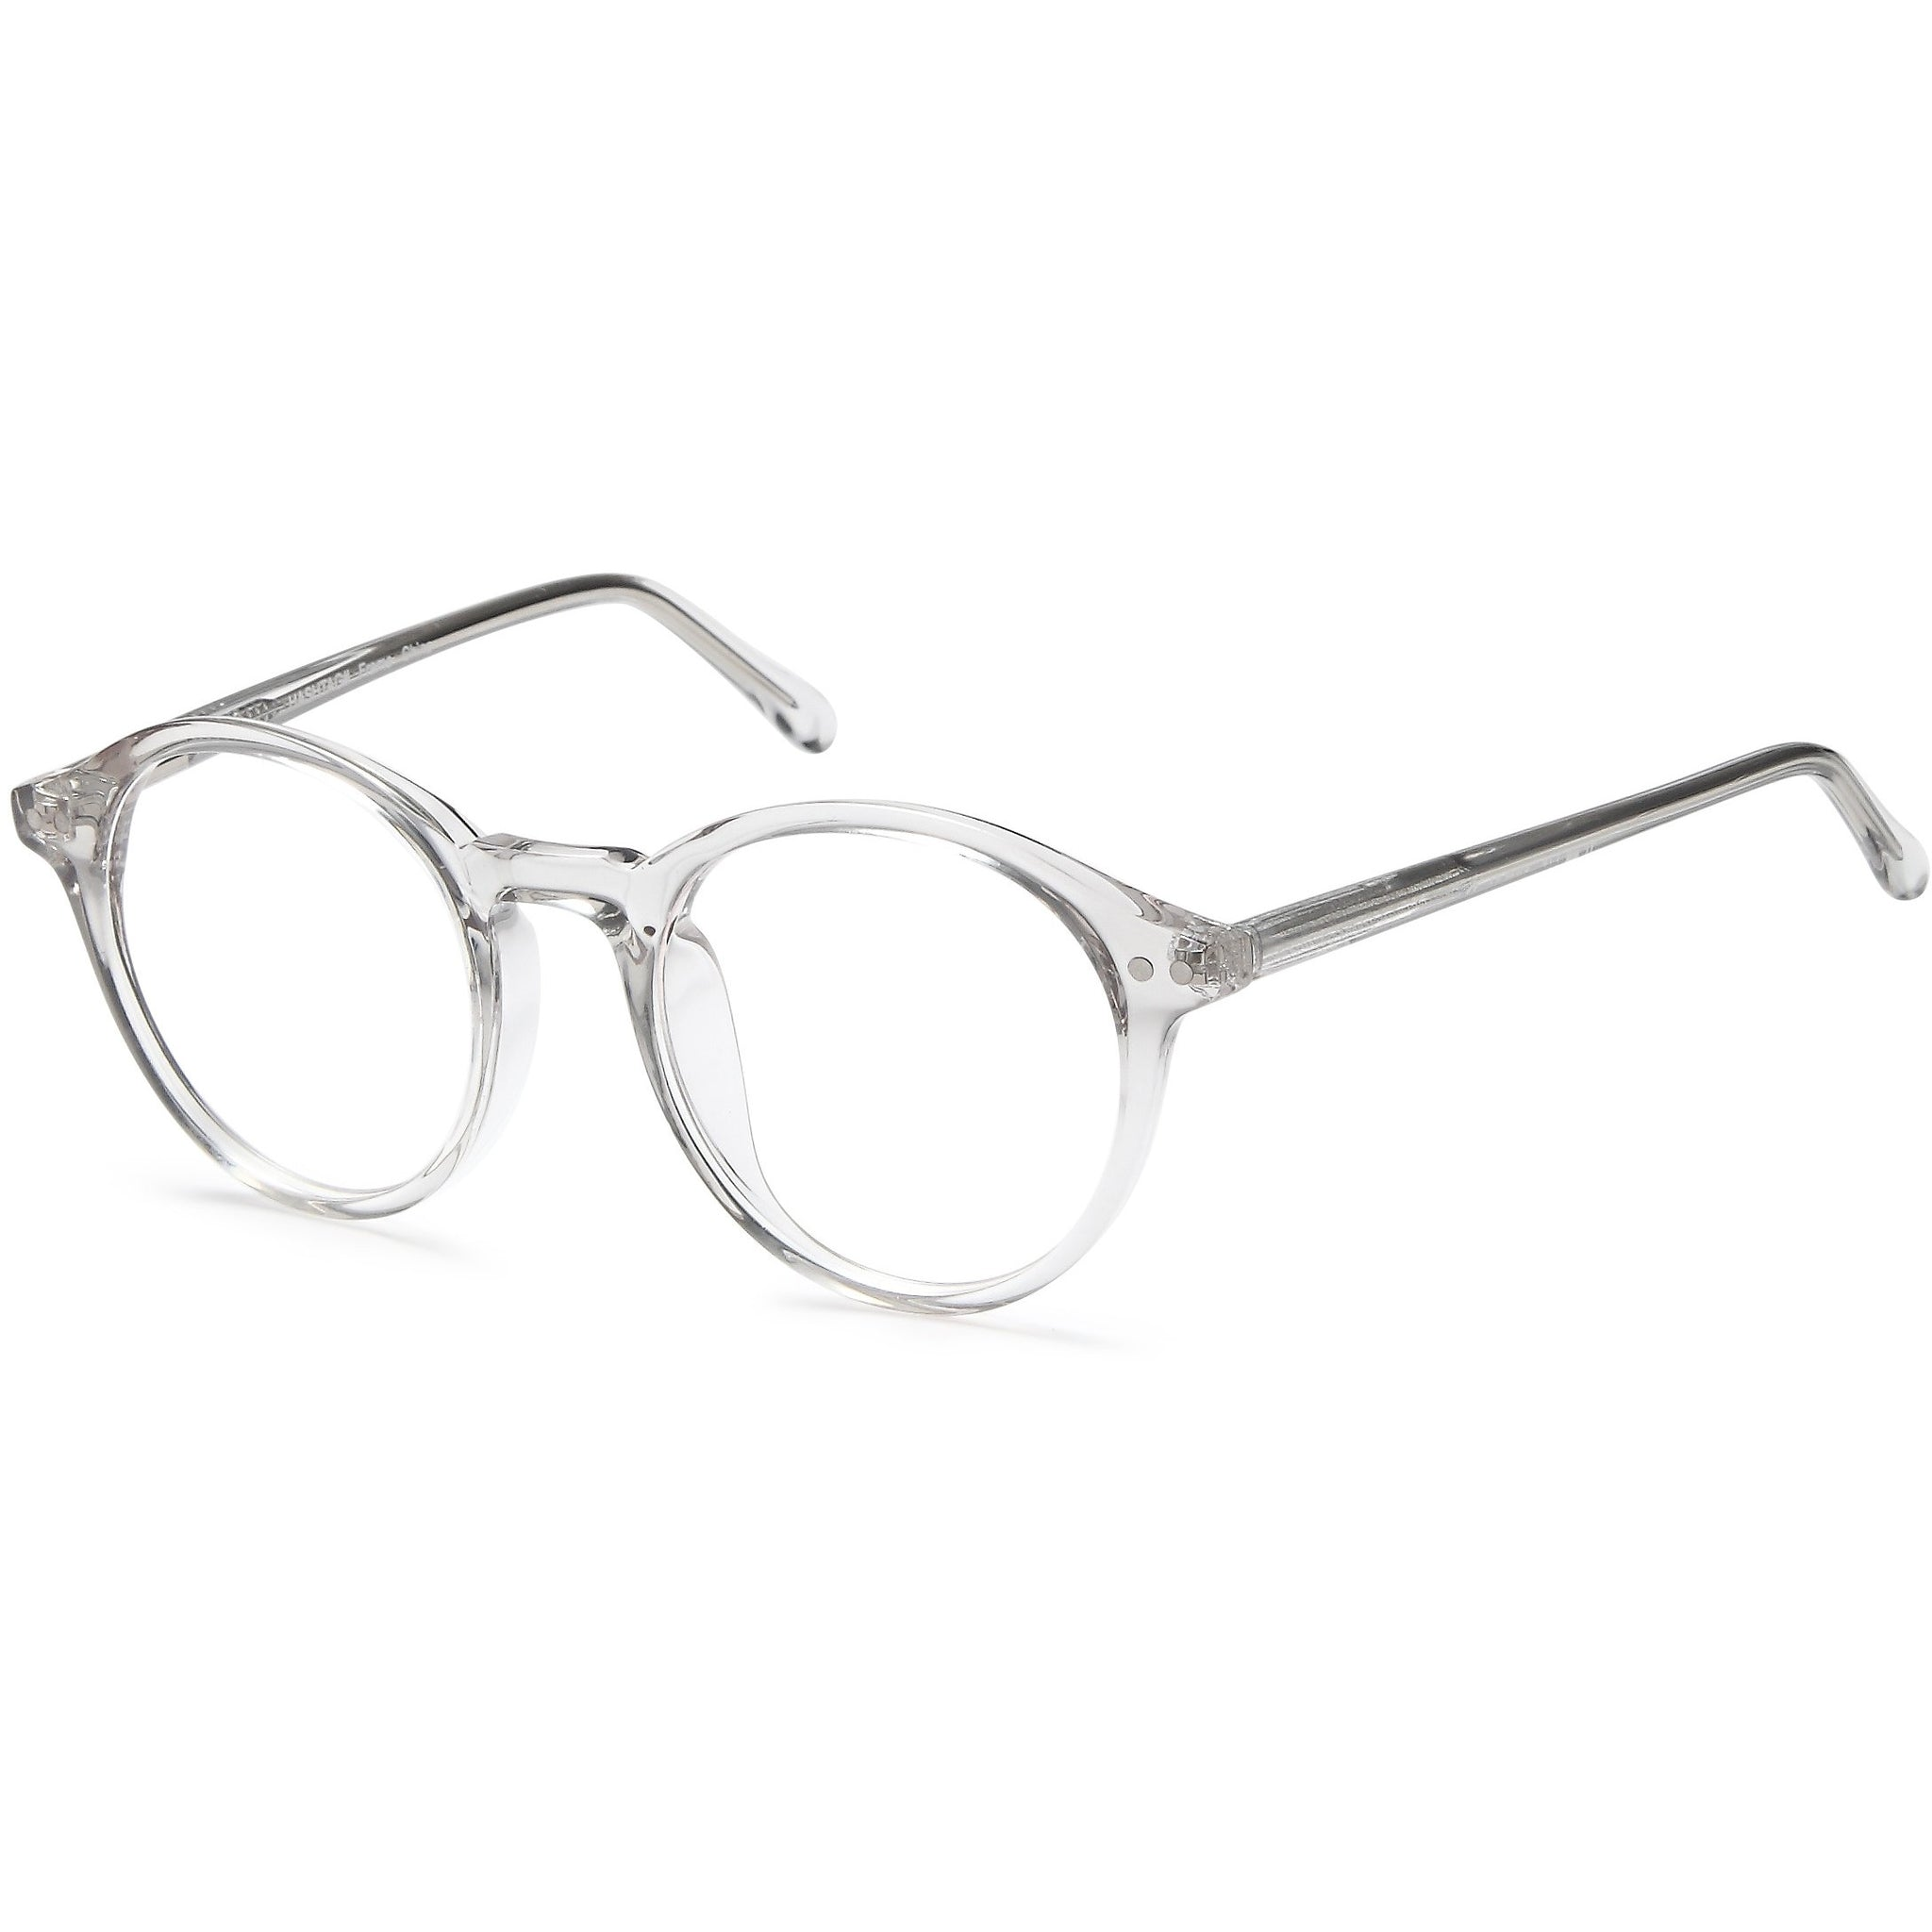 Brixton by The Square Mile Prescription Glasses Eyeglasses